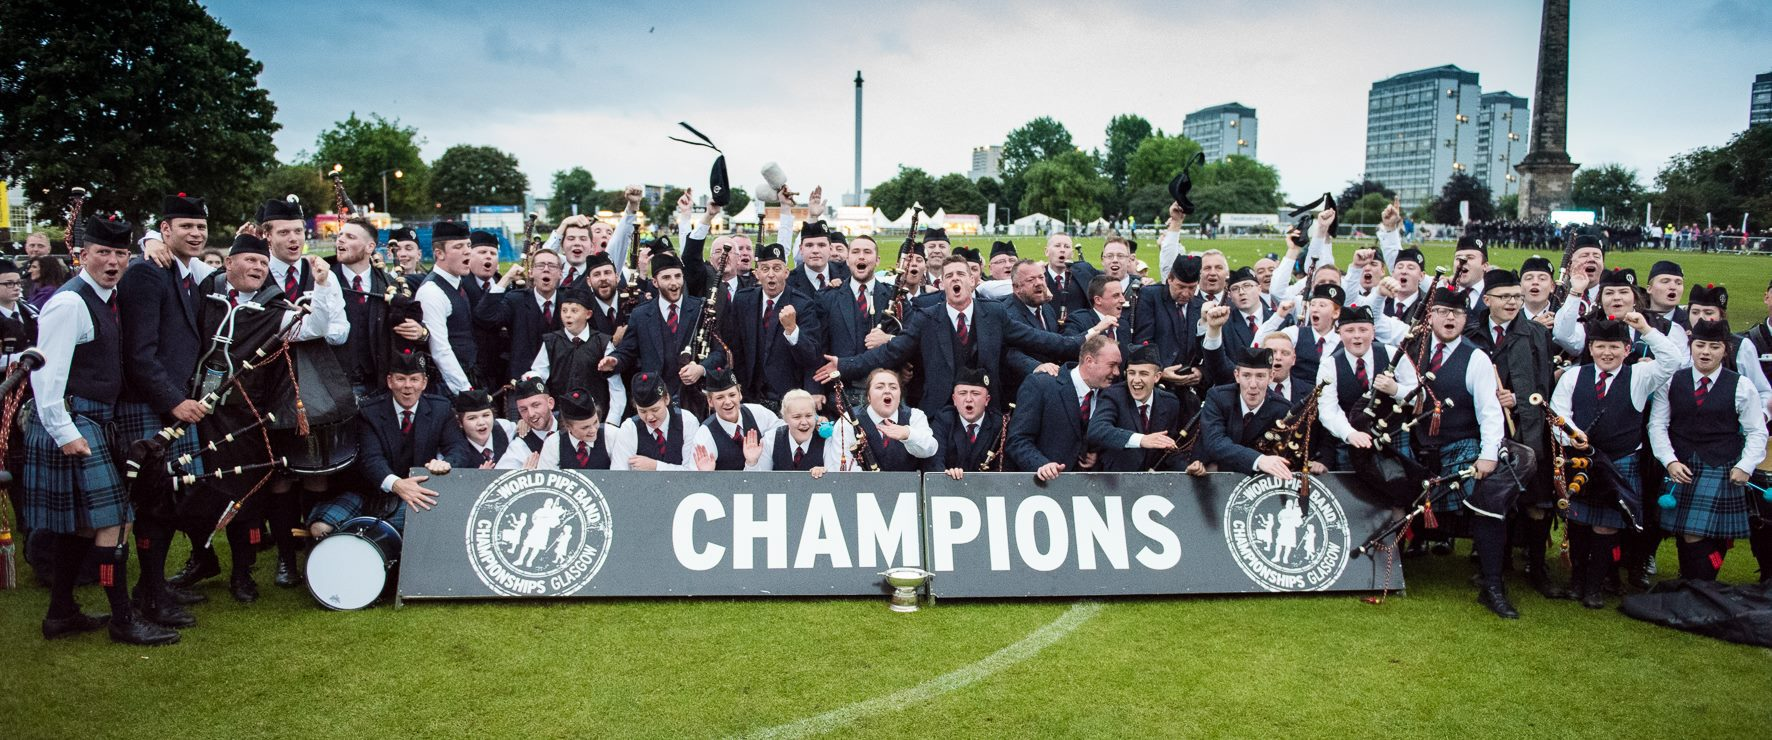 The combined bands celebrating their World Championship wins in August Pictures by John Shaw